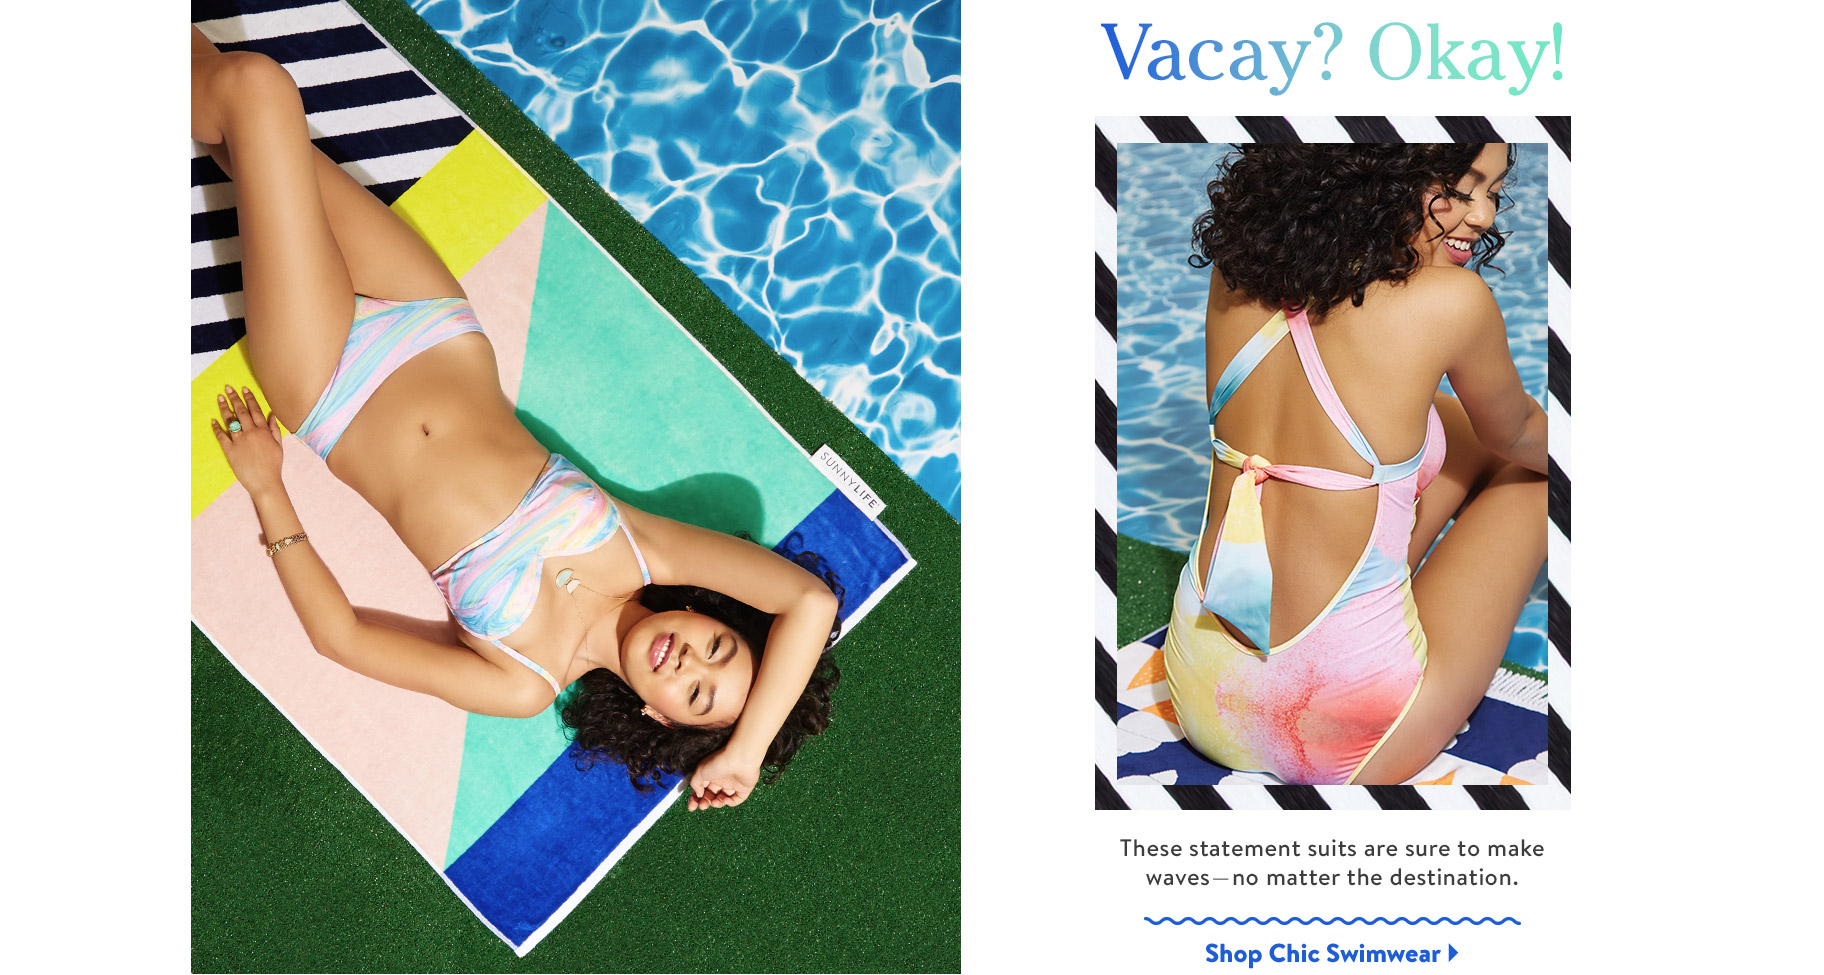 Vacay? Okay! Tehse statement suits are sure to make waves-no matter the destination. Shop Chic Swimwear.